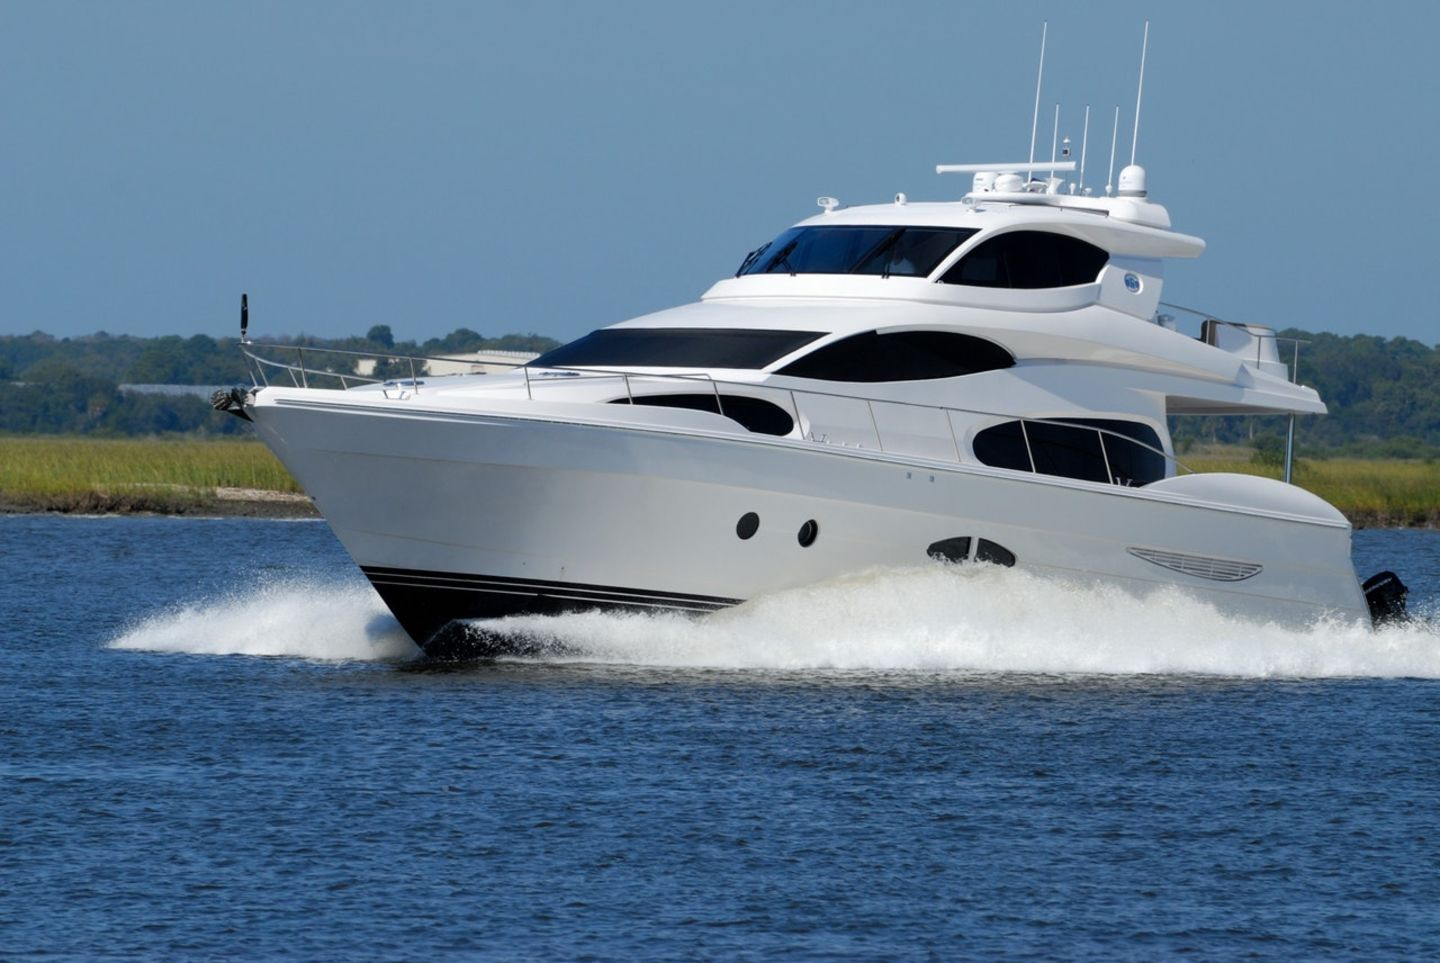 HiDubai-business-funaqua-yachts-and-boats-rental-transport-vehicle-services-boat-yacht-rentals-business-bay-dubai-2